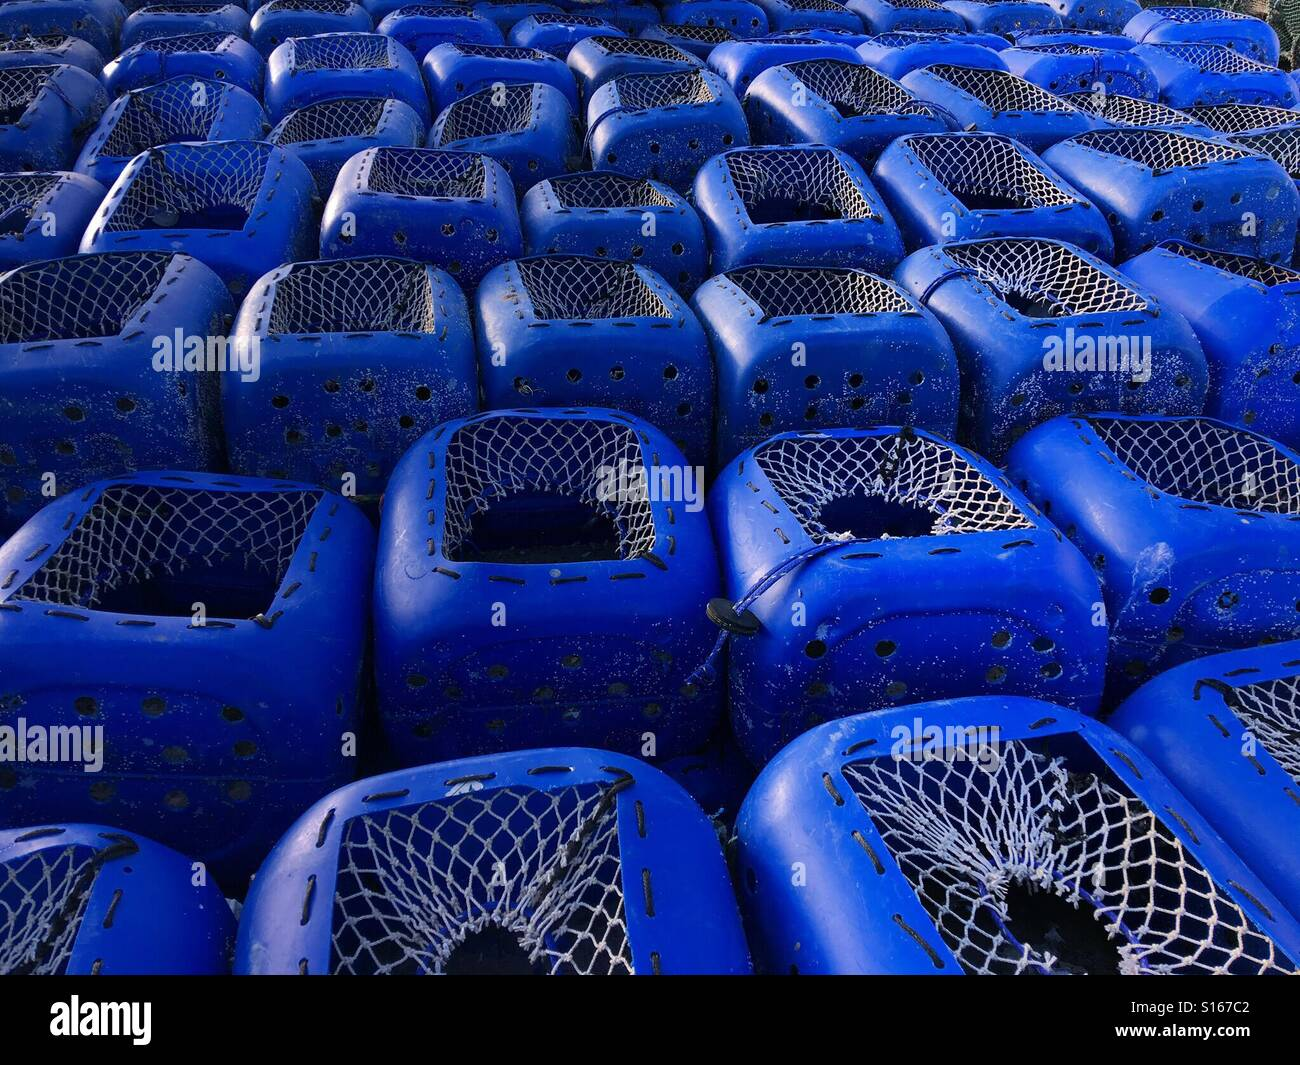 Blue plastic containers adapted to make lobster pots, stacked on the quayside - Stock Image